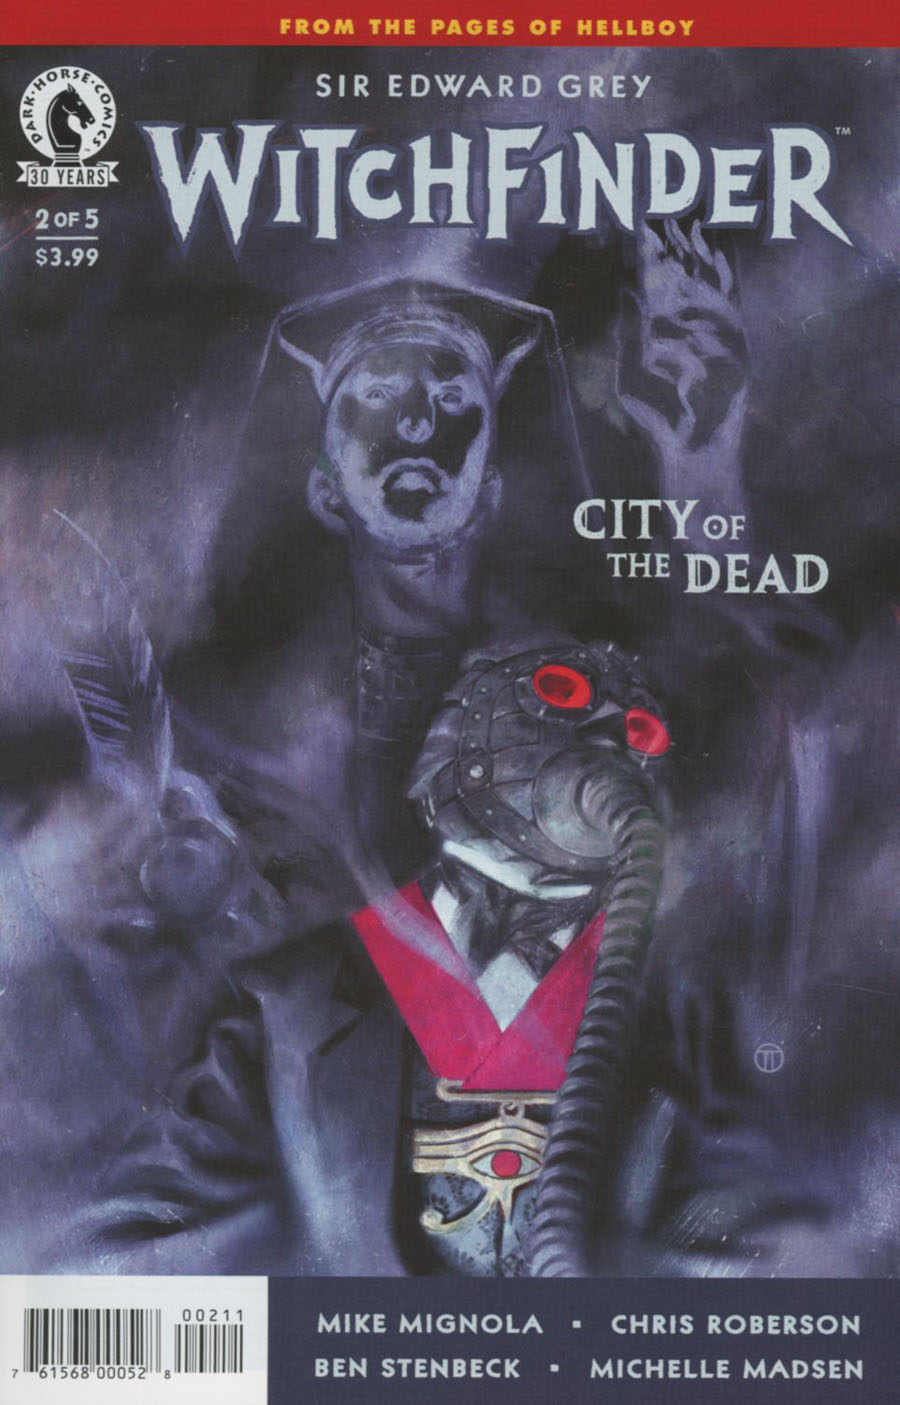 Witchfinder City Of The Dead #2